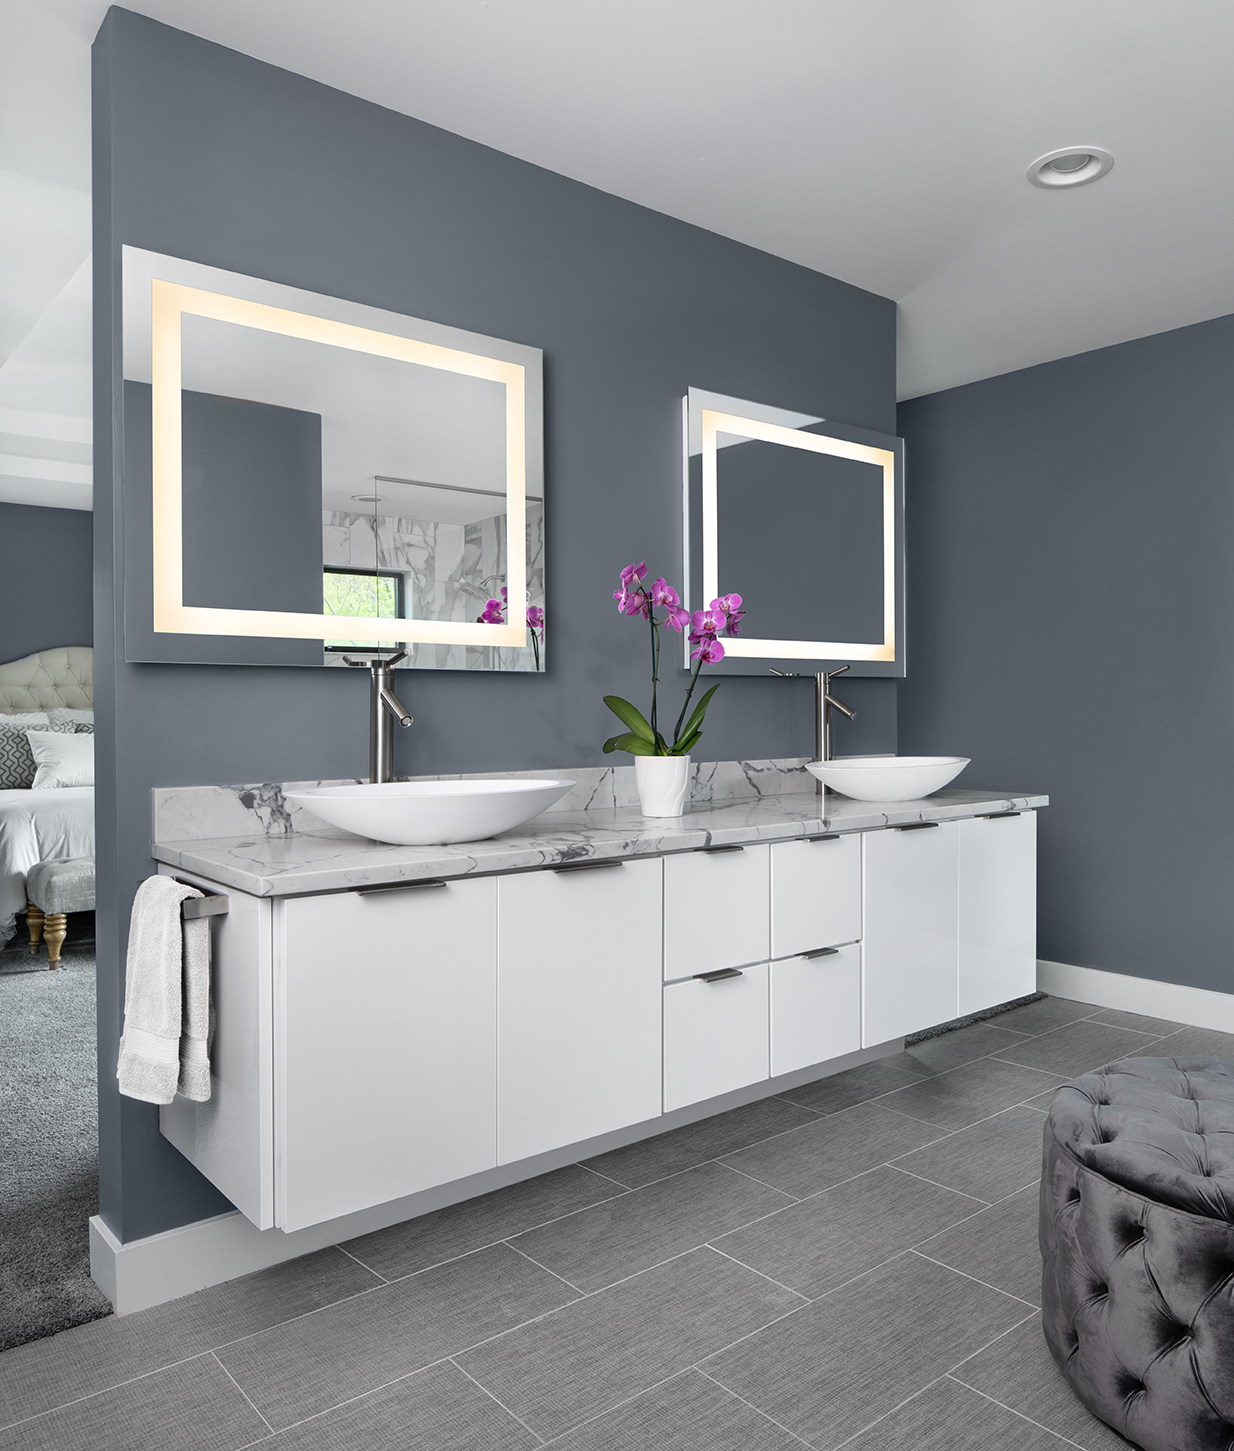 KSI Kitchen and bath-Contemporary_masterbath-white cabinet